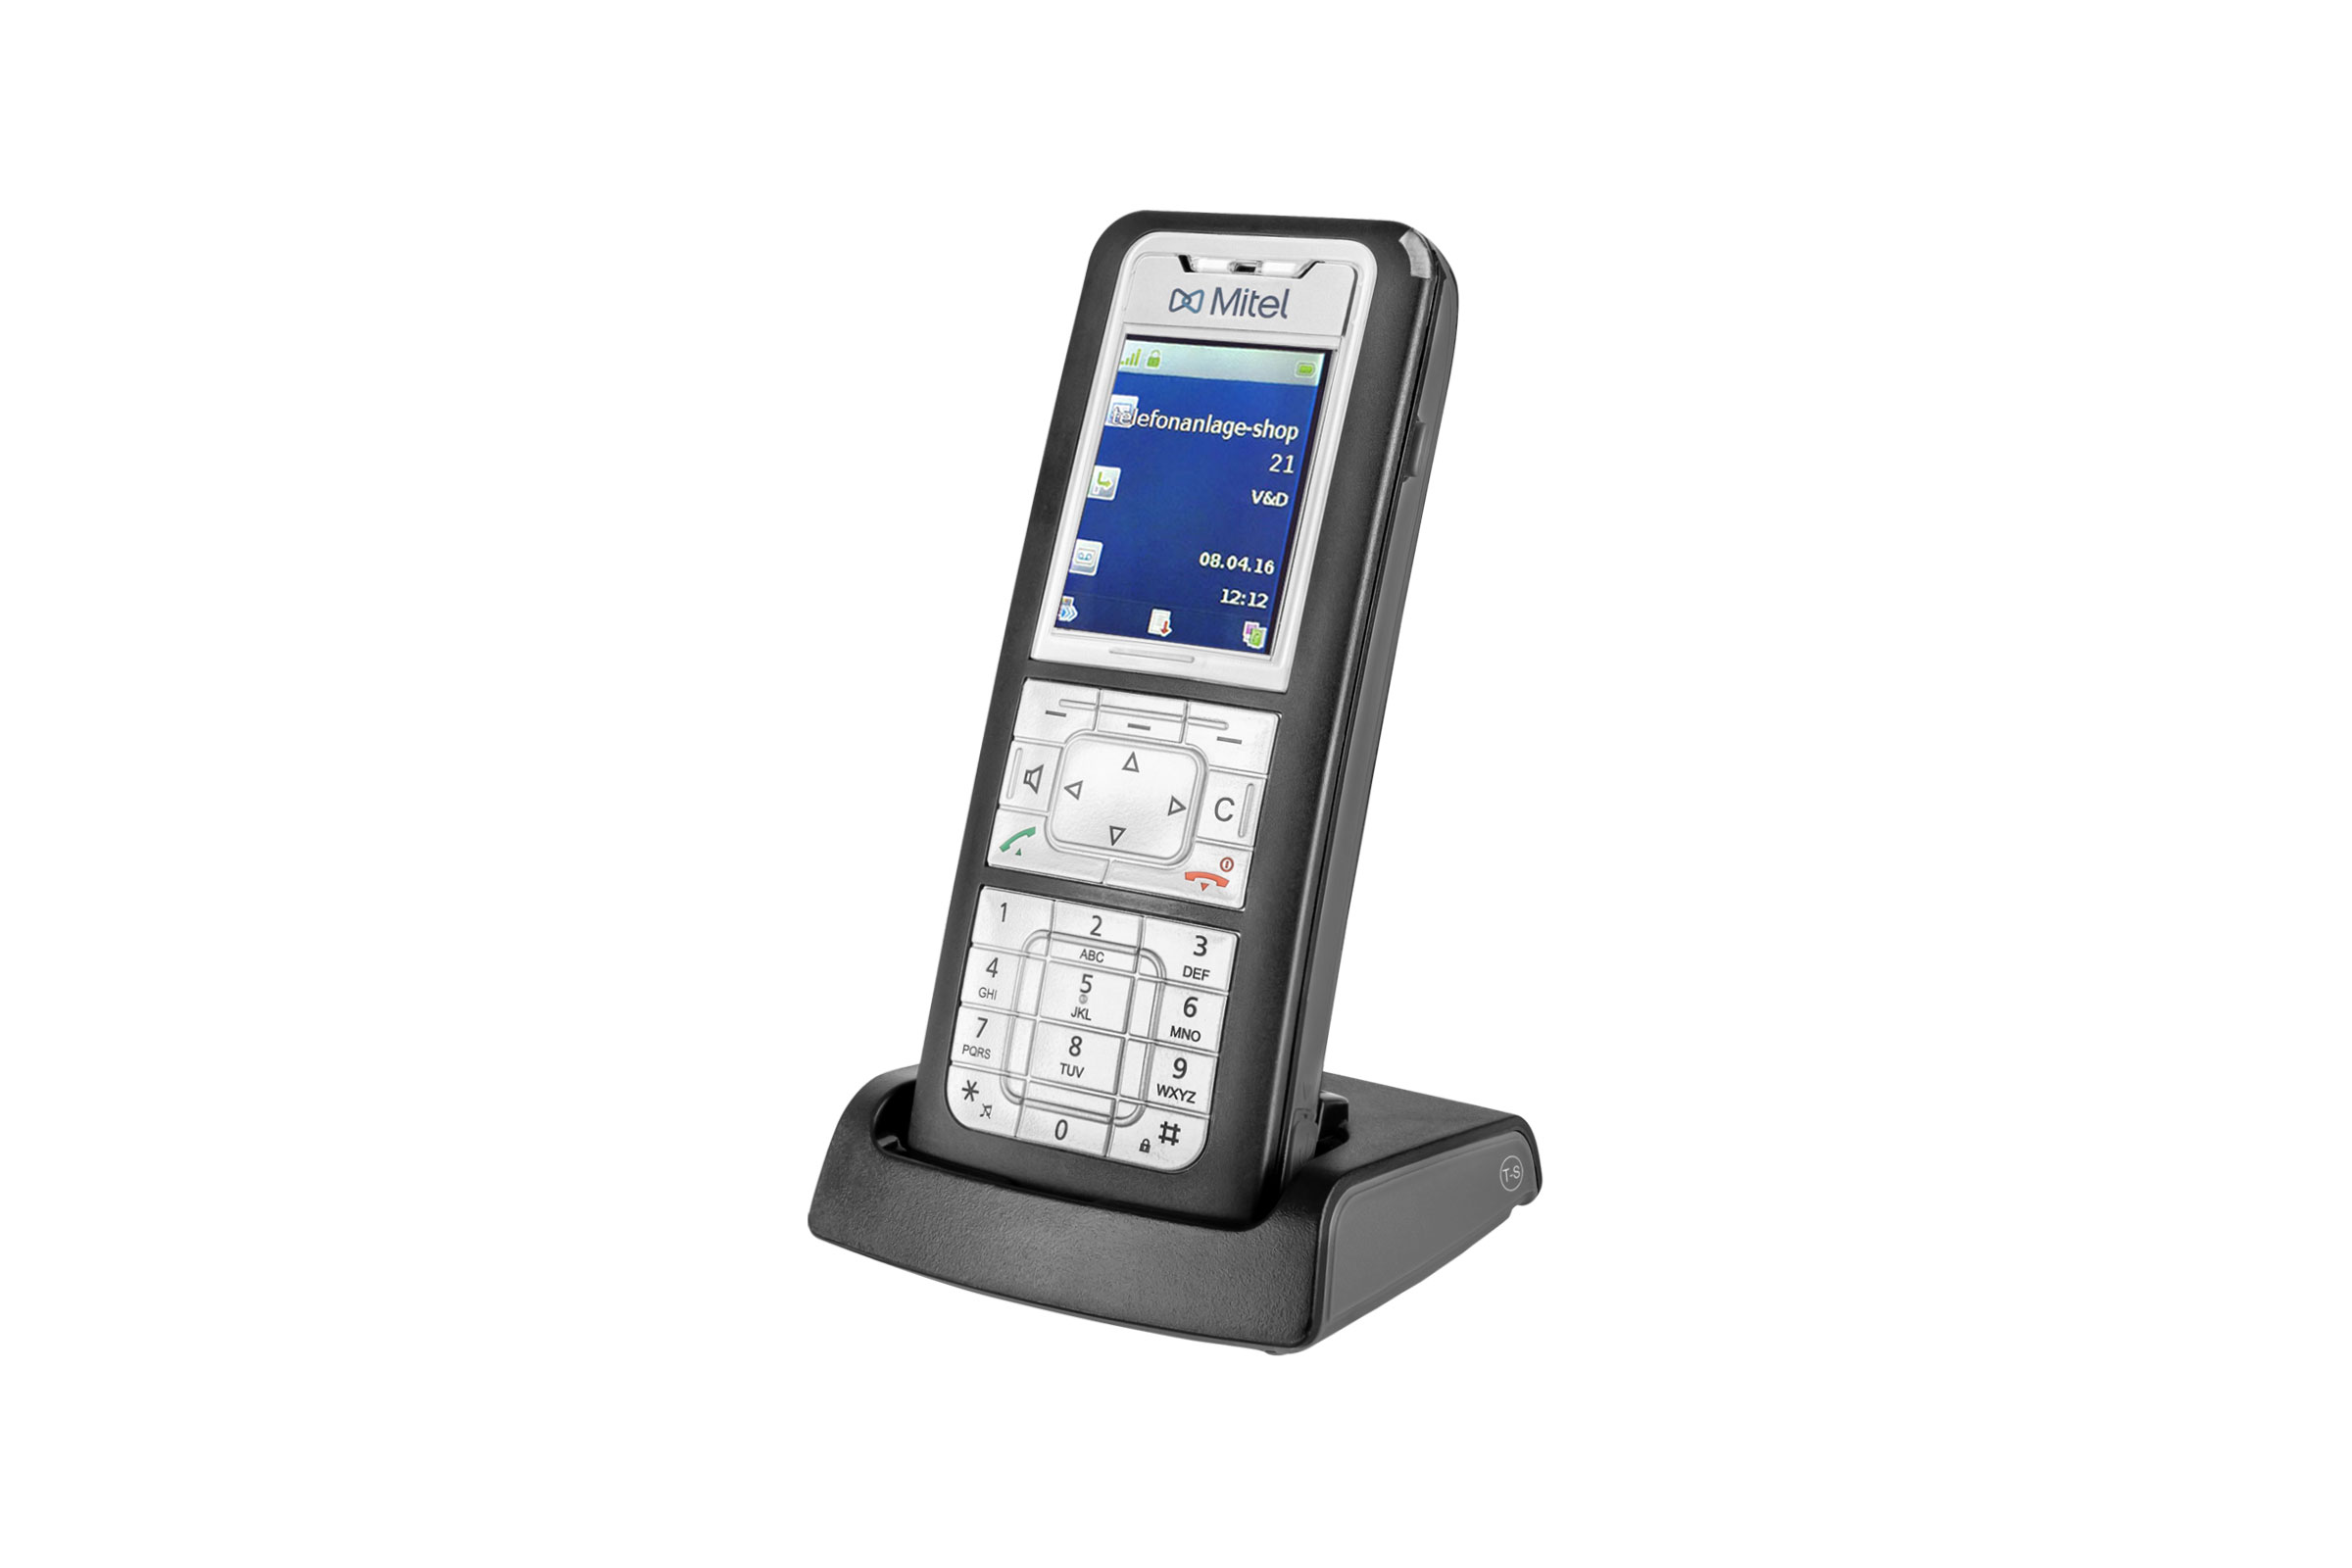 Vollansicht - Mitel 632 DECT Phone - Set mit Ladeschale (Aastra 632d)